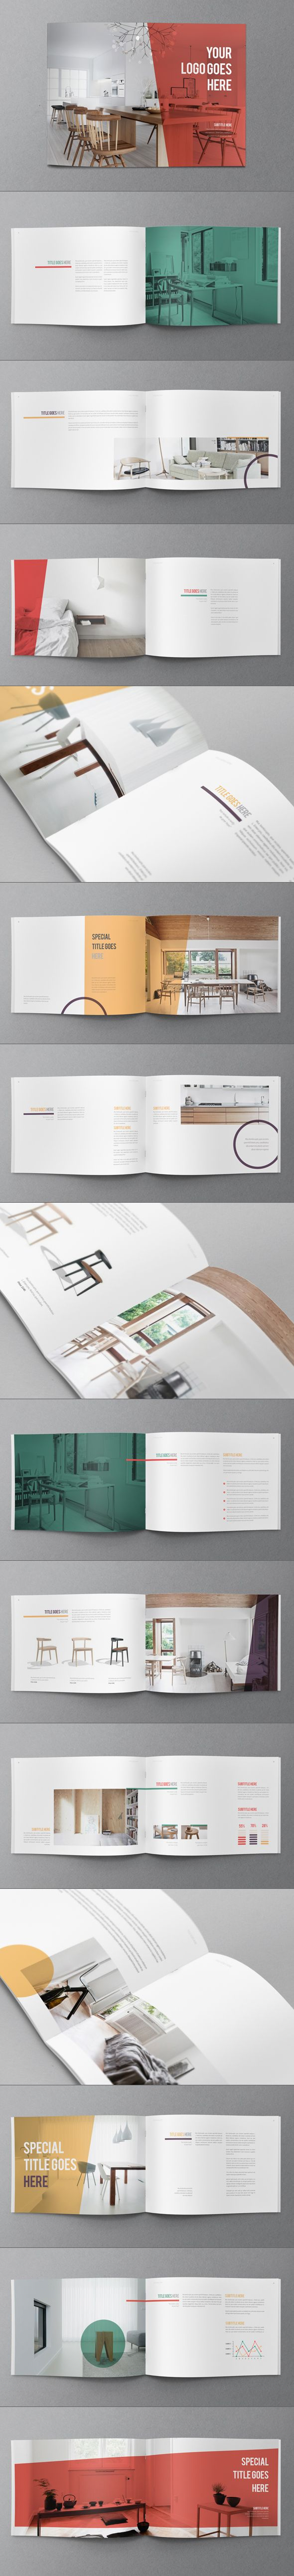 Colorful Minimal Brochure on Behance